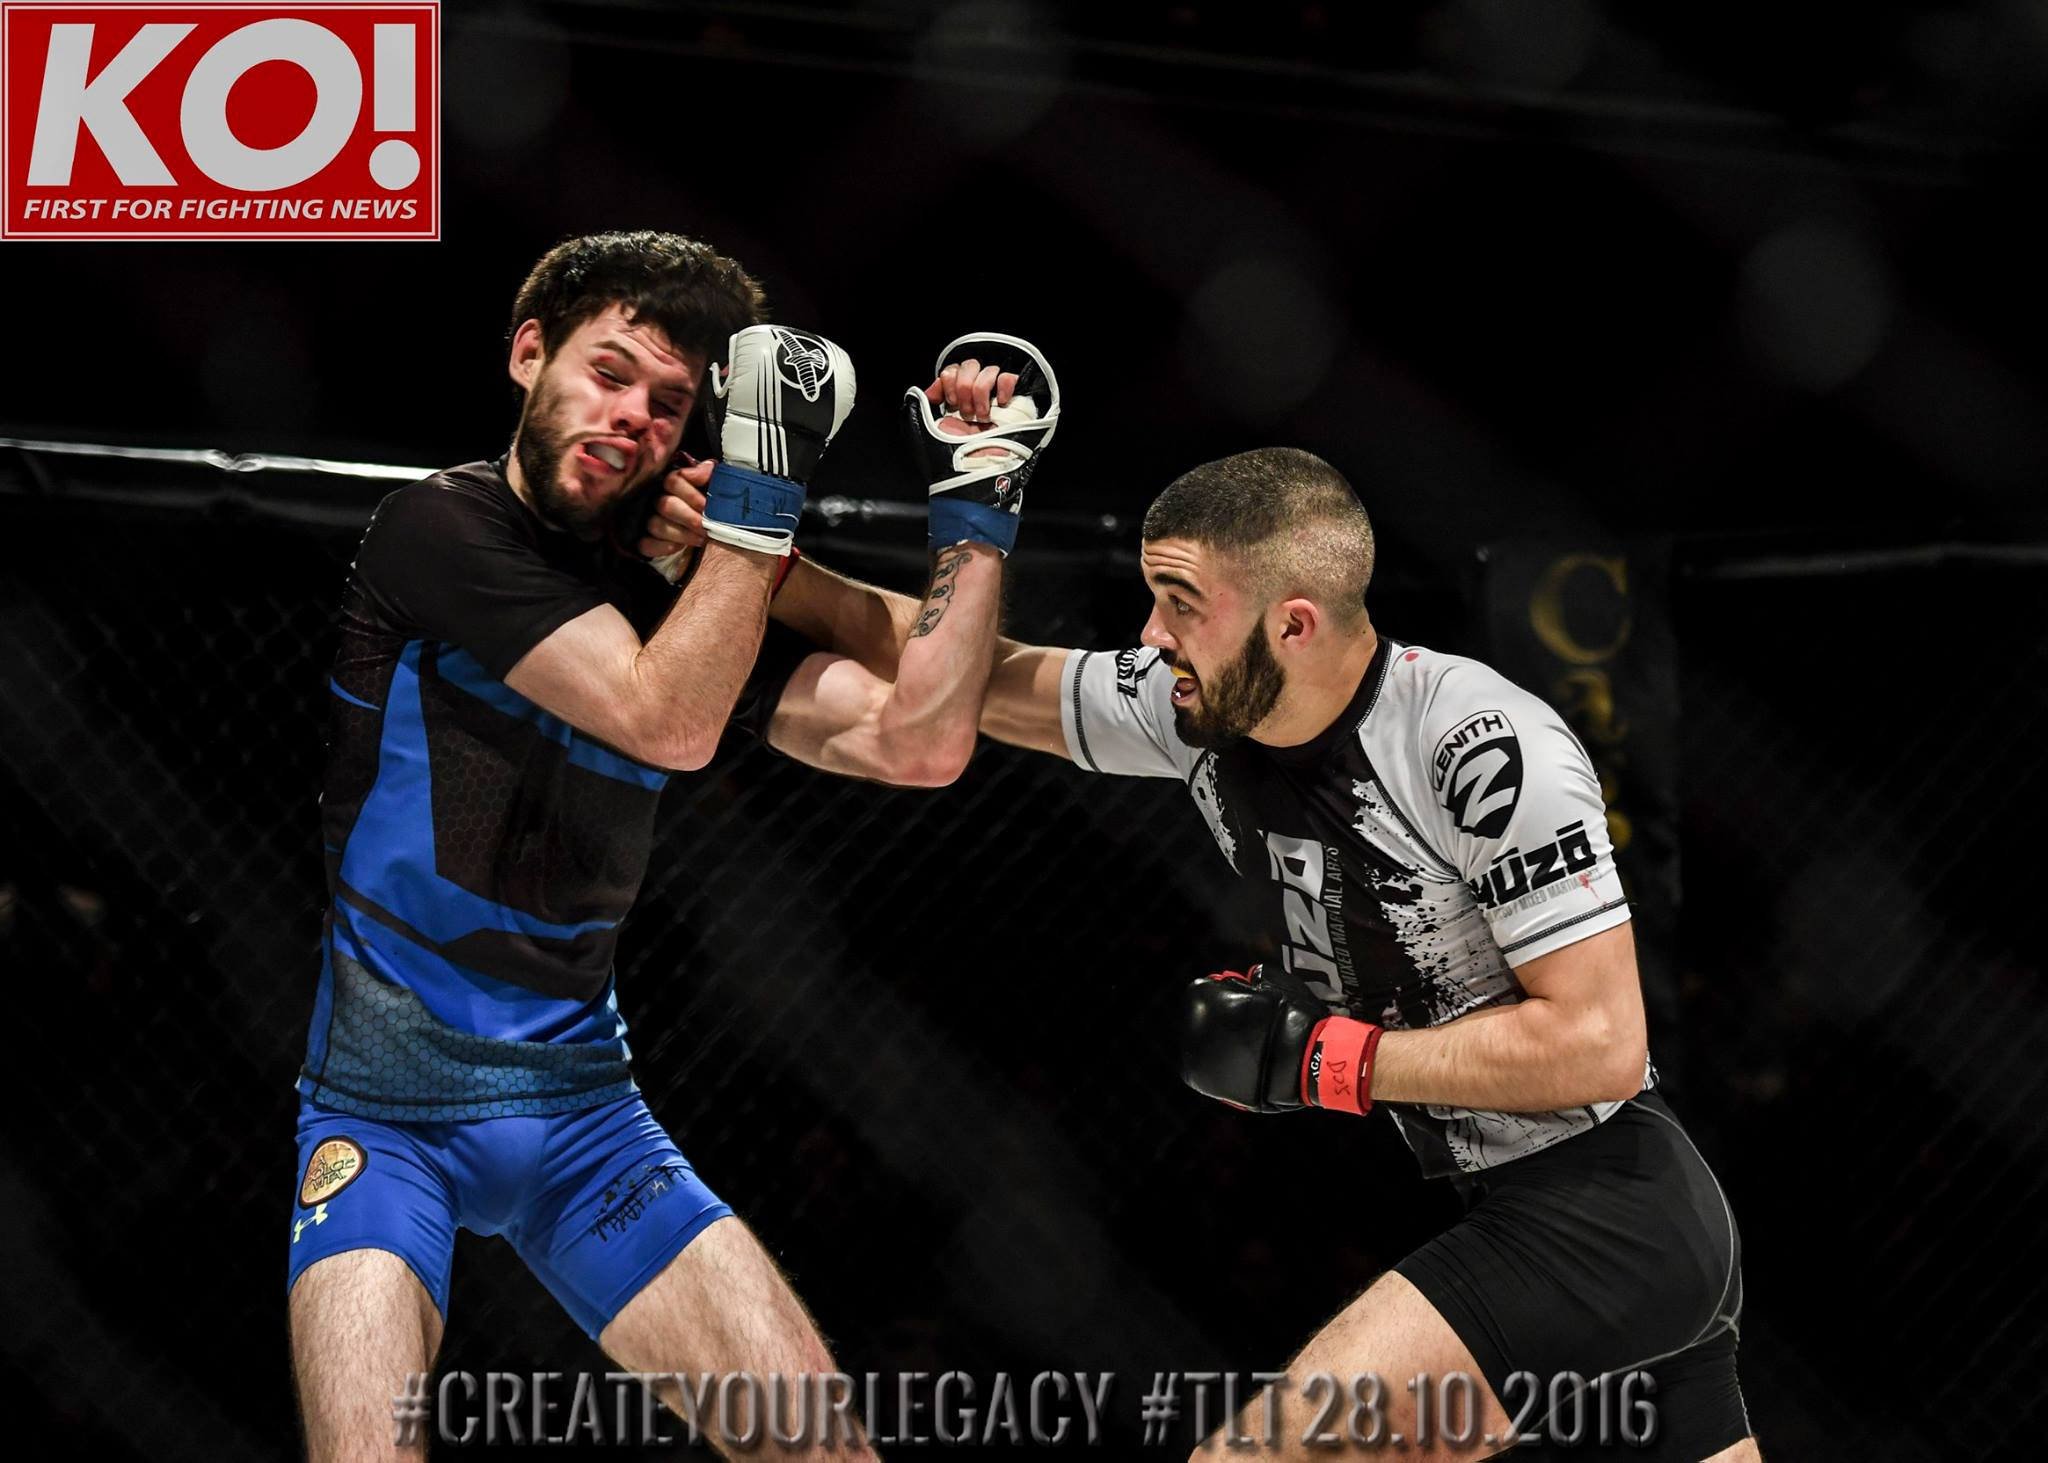 Austin Lynch (Kyuzo MMA) lands a right hand on Padraig Magee (Torres MMA) on his way to winning the bantamweight MMA title at Cage Legacy 28/10/16 (Photo Credit, KO Media)